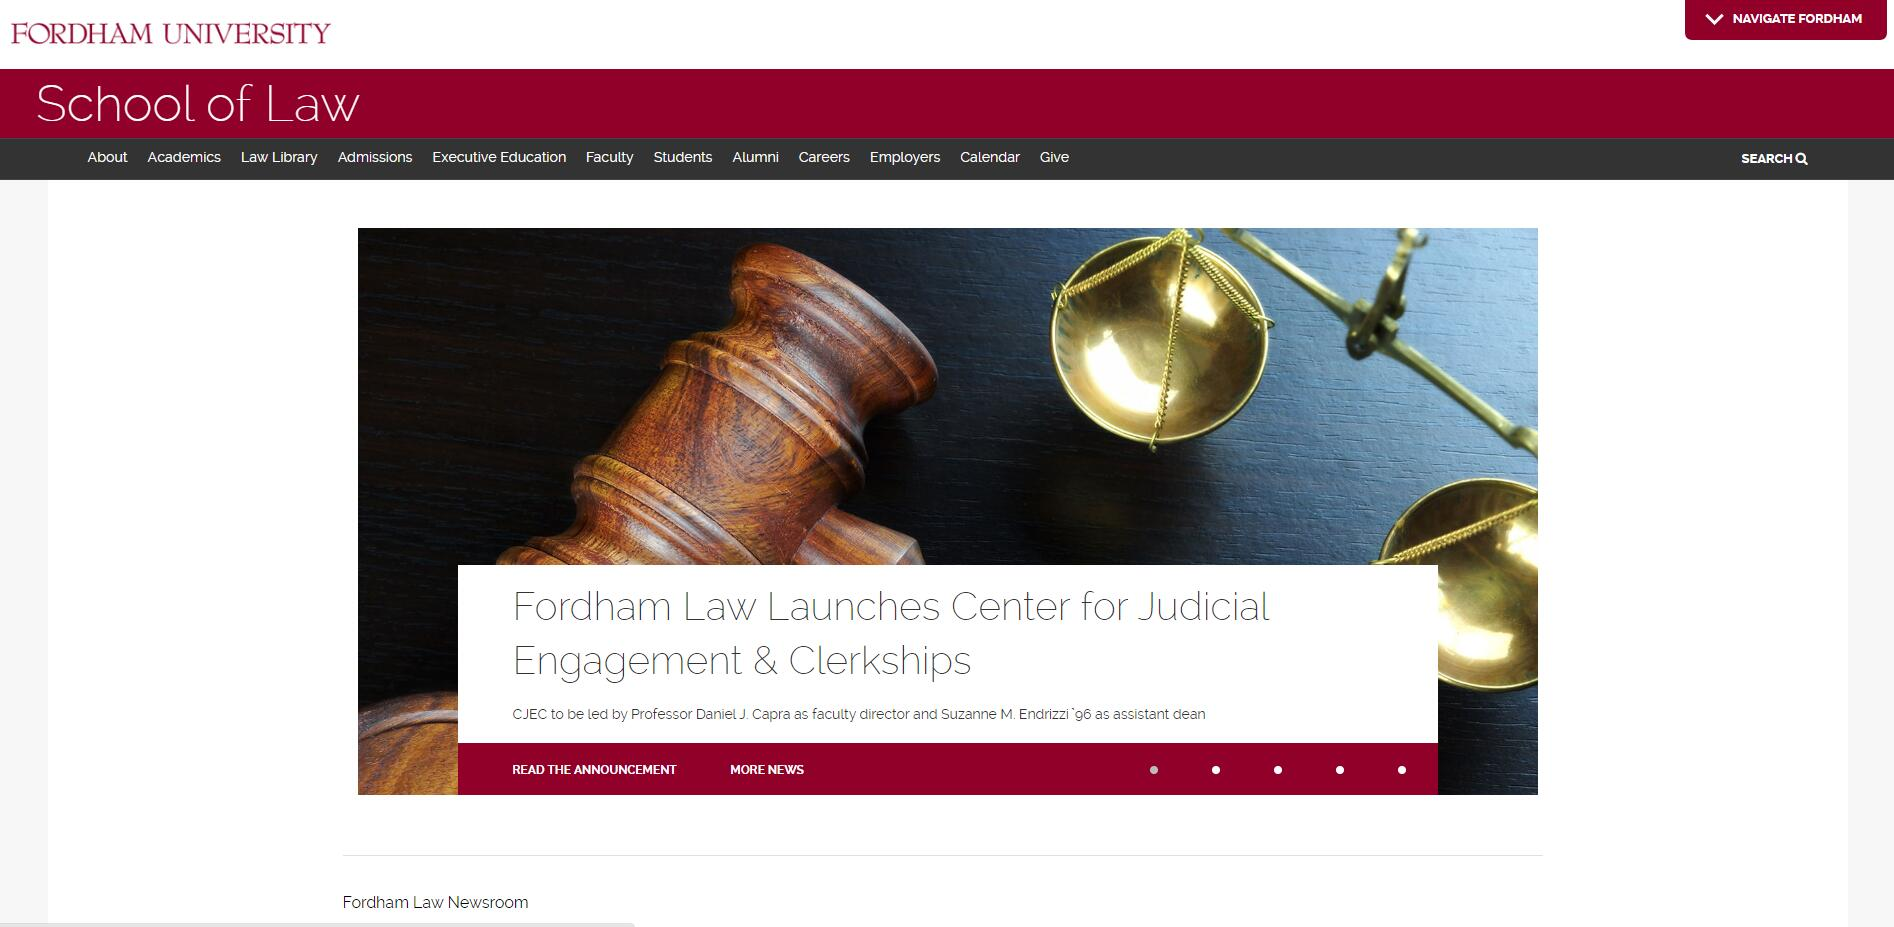 The School of Law at Fordham University